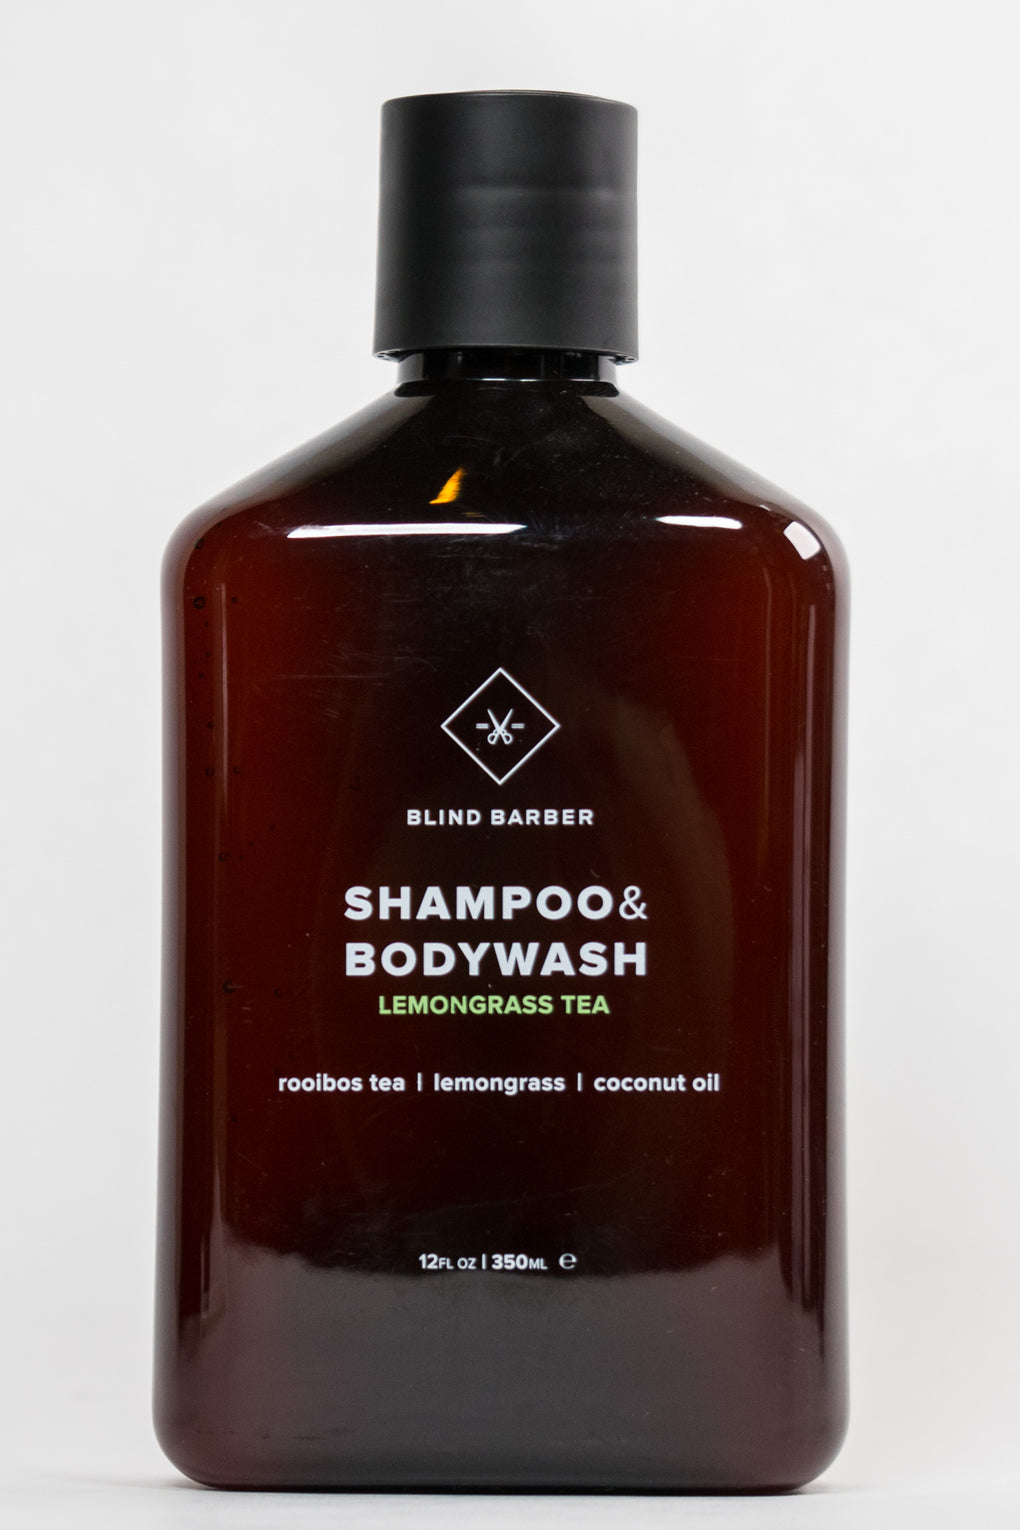 Blind Barber Shampoo at Consigliere